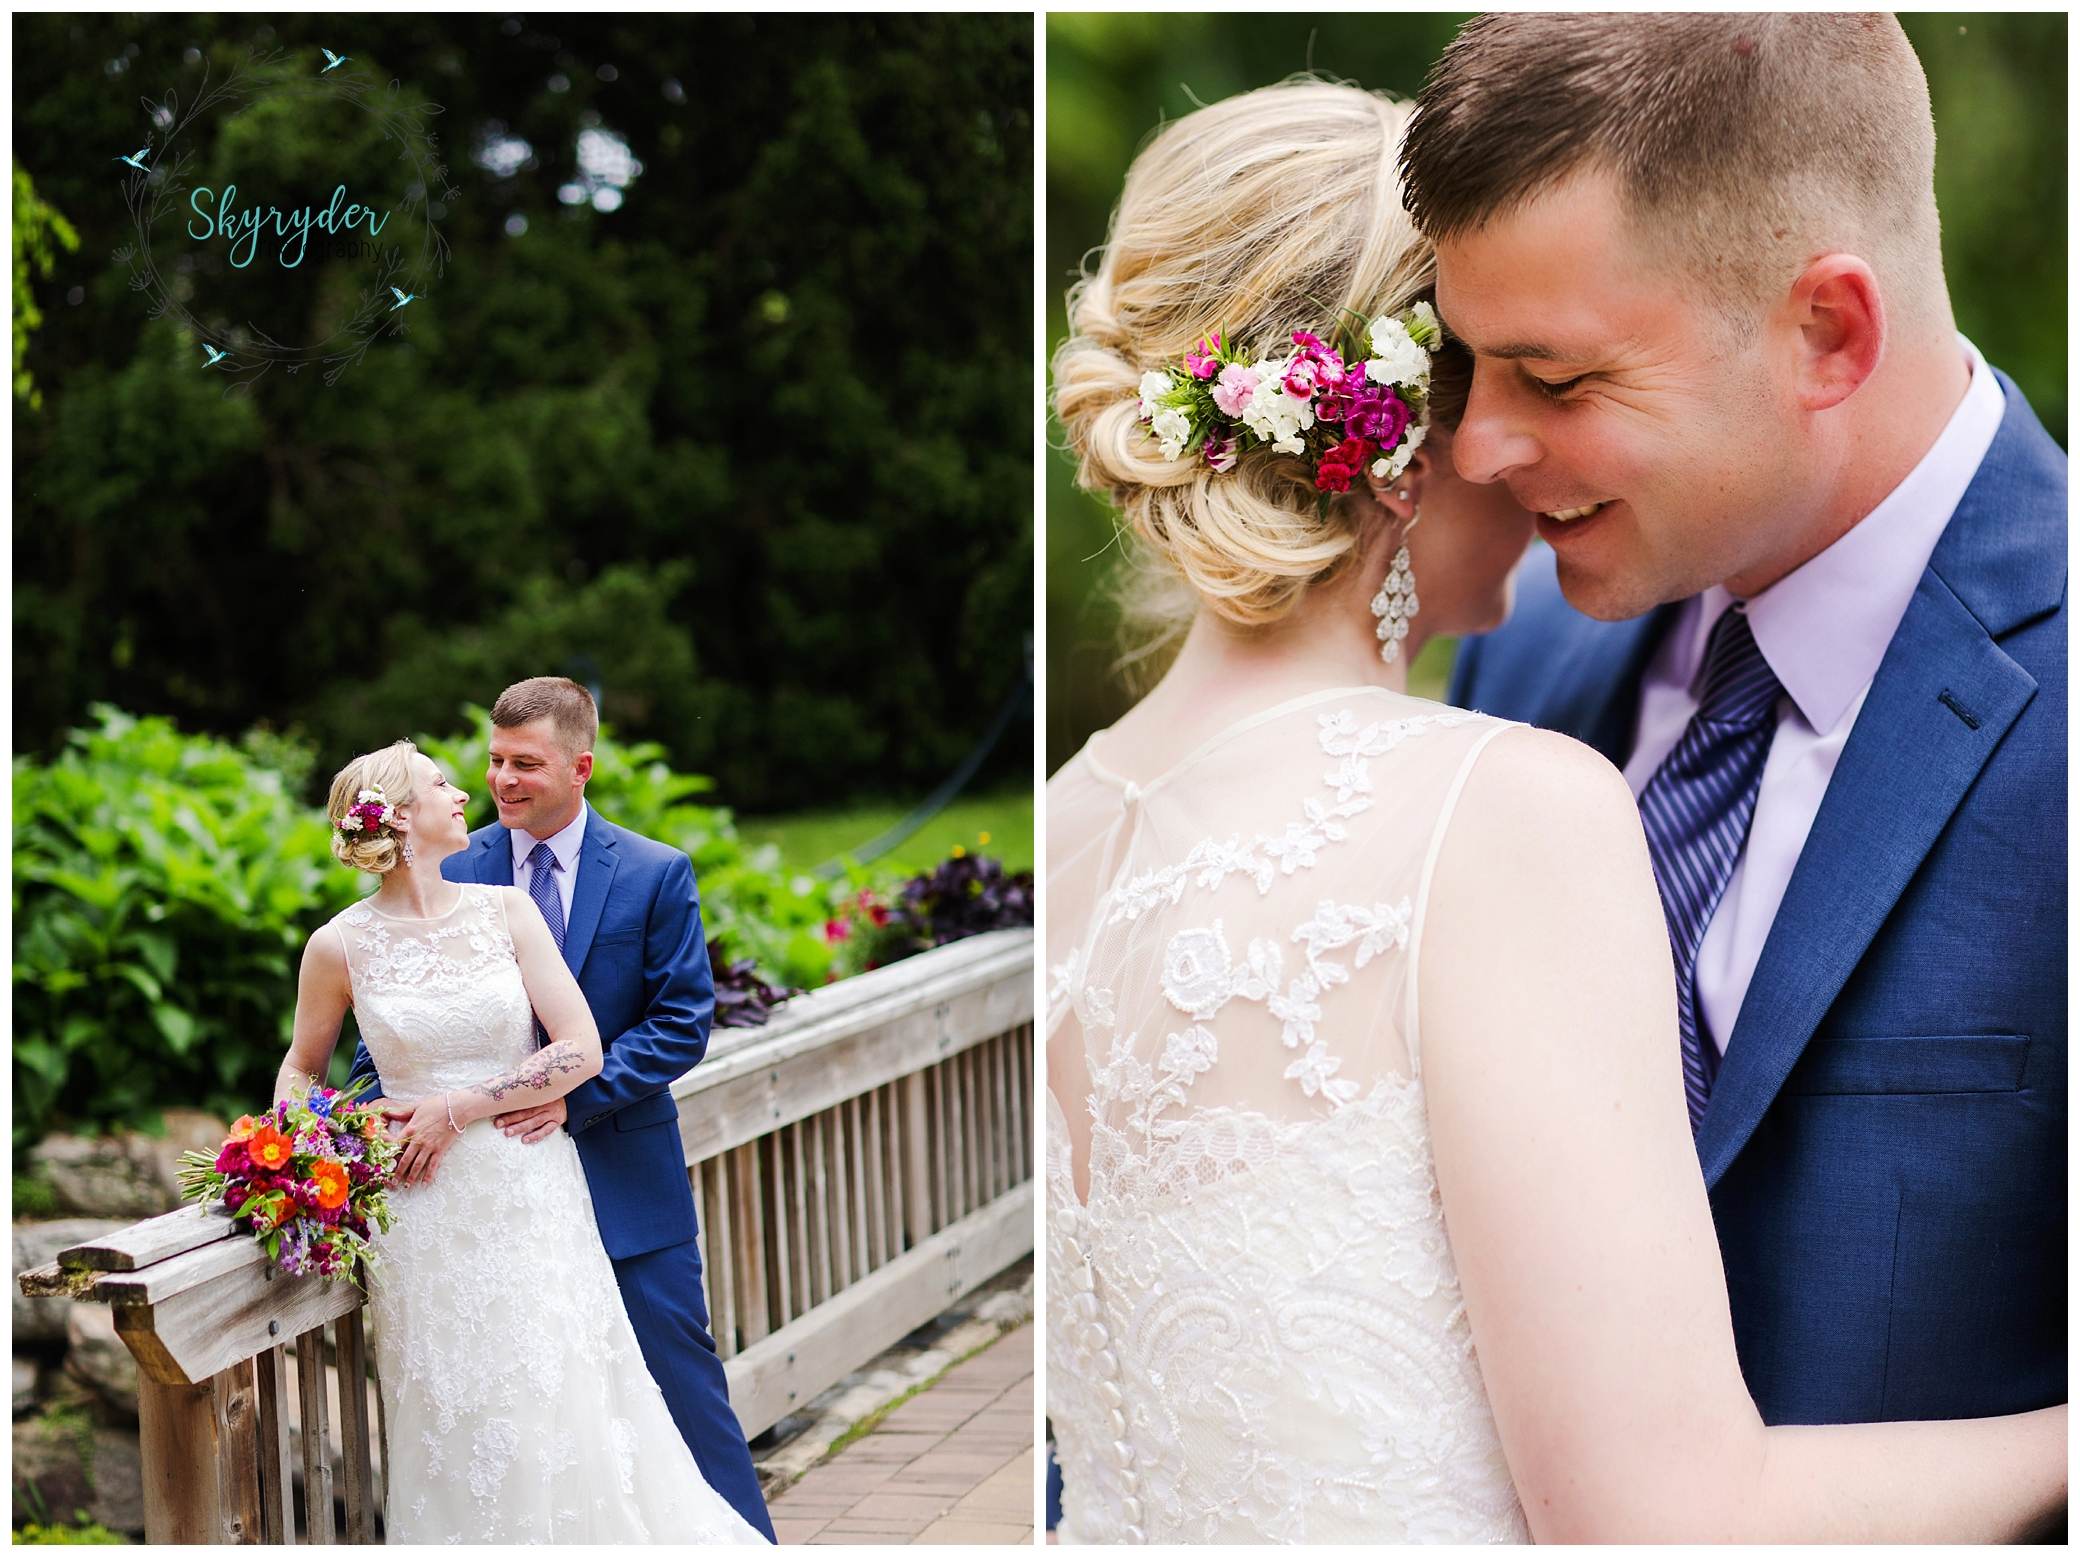 Tawny + Joey | Blacksburg Wedding Photography | Beliveau Estate Winery